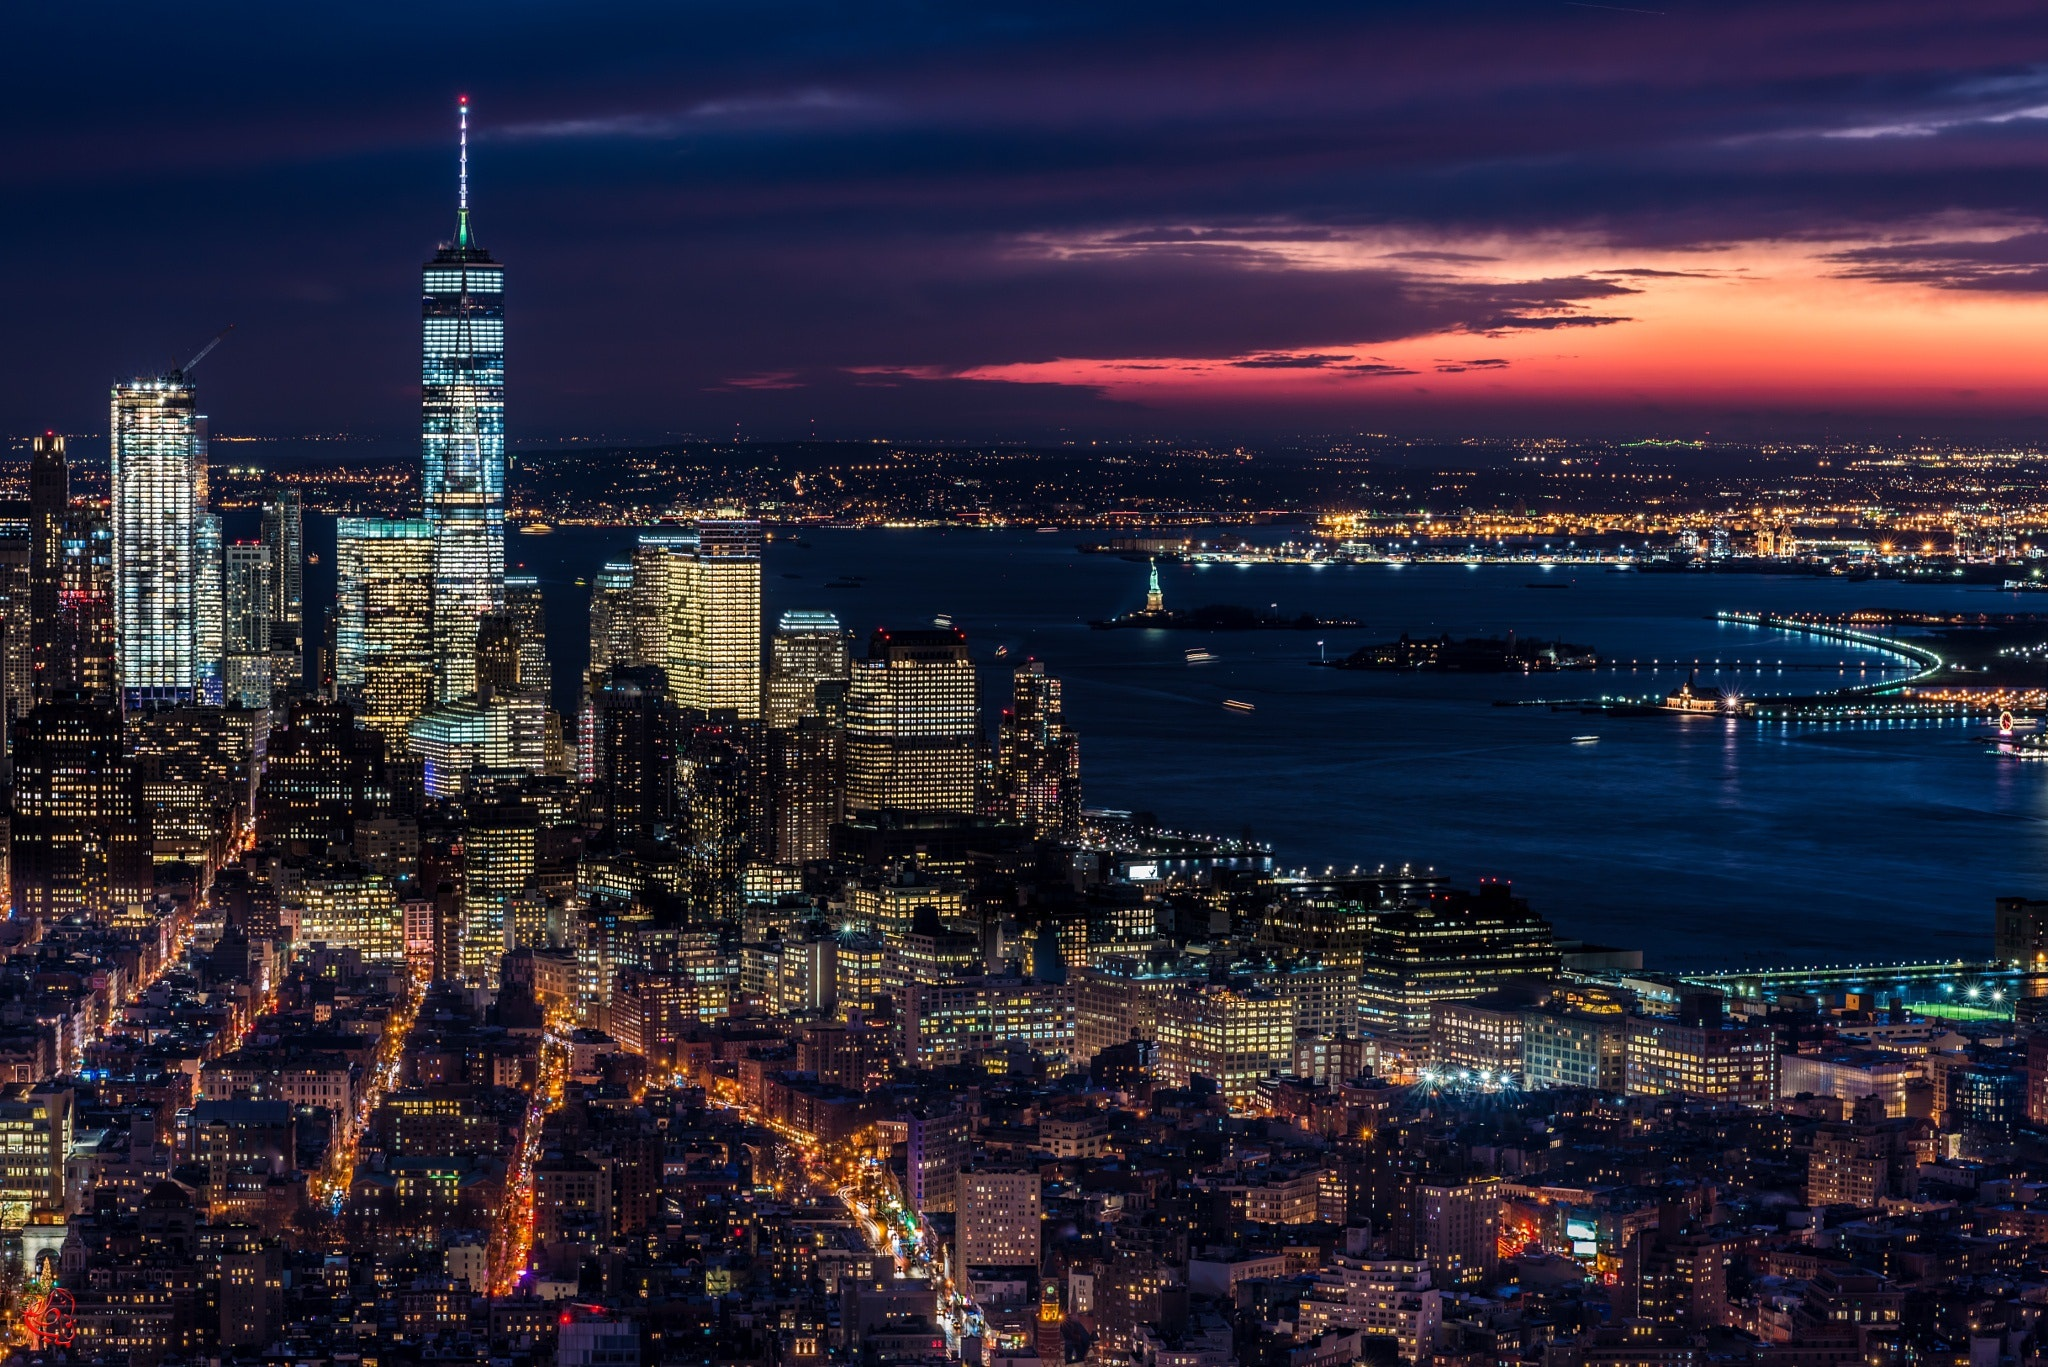 1920x1080 new york hd laptop full hd 1080p hd 4k wallpapers images backgrounds photos and - New york city wallpaper hd pictures ...